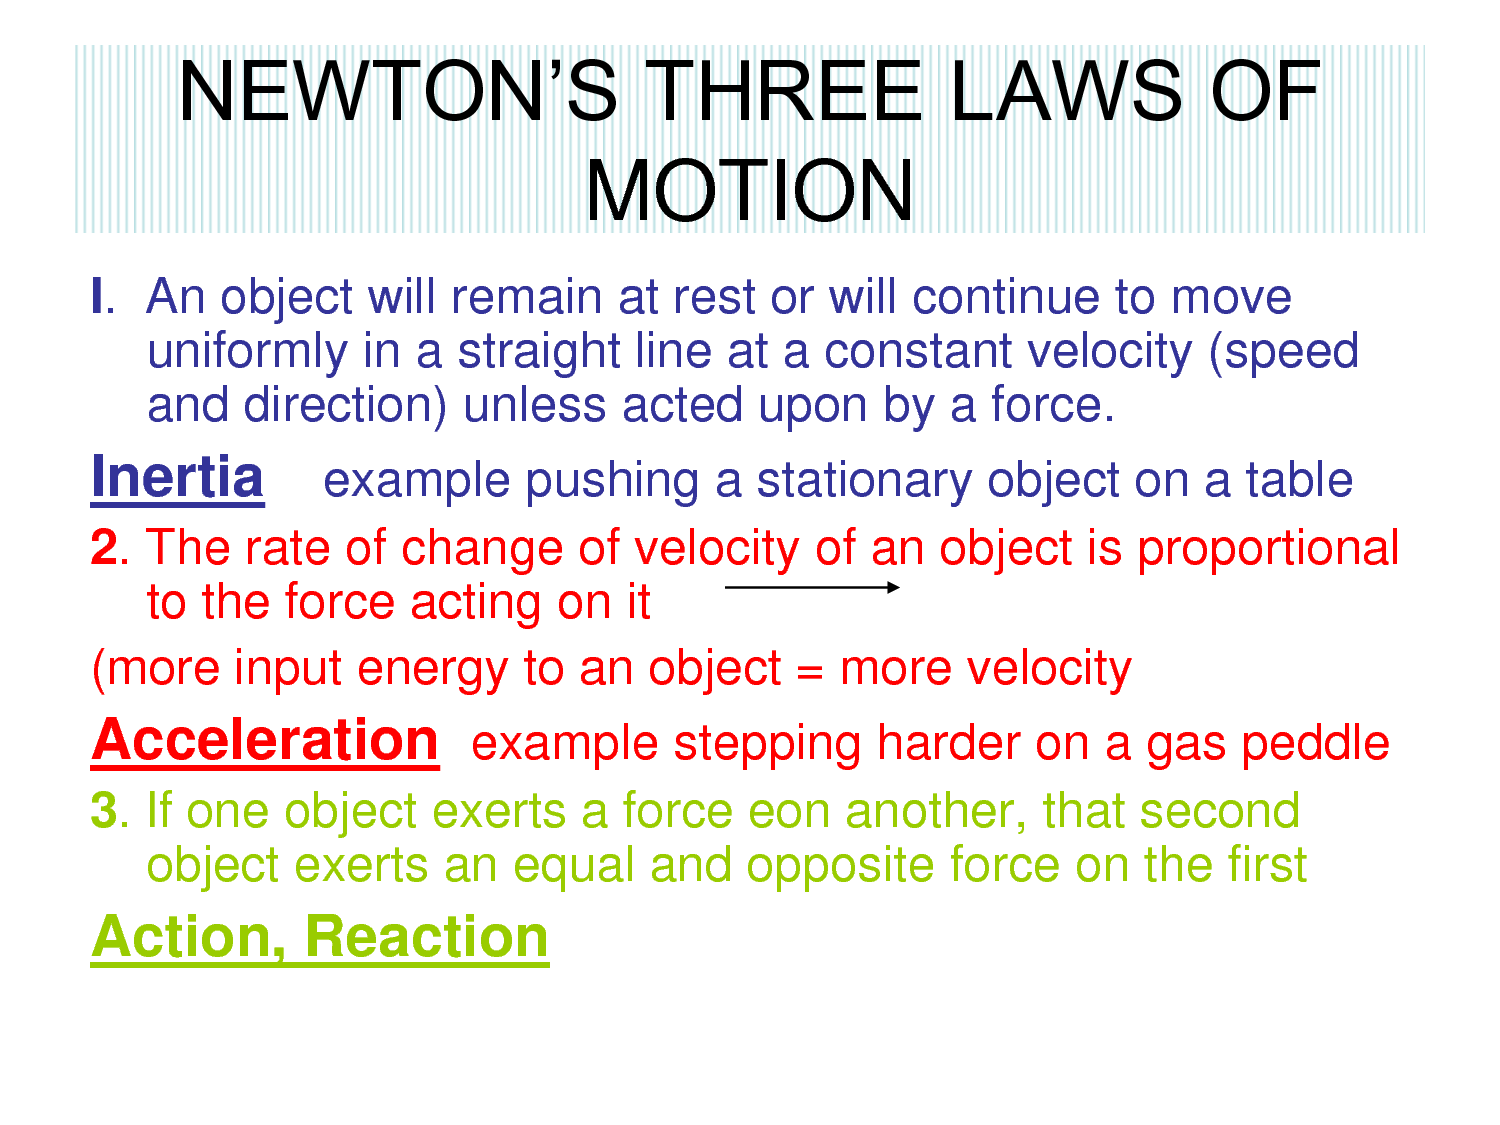 LAWS OF MOTION Quotes Like Success